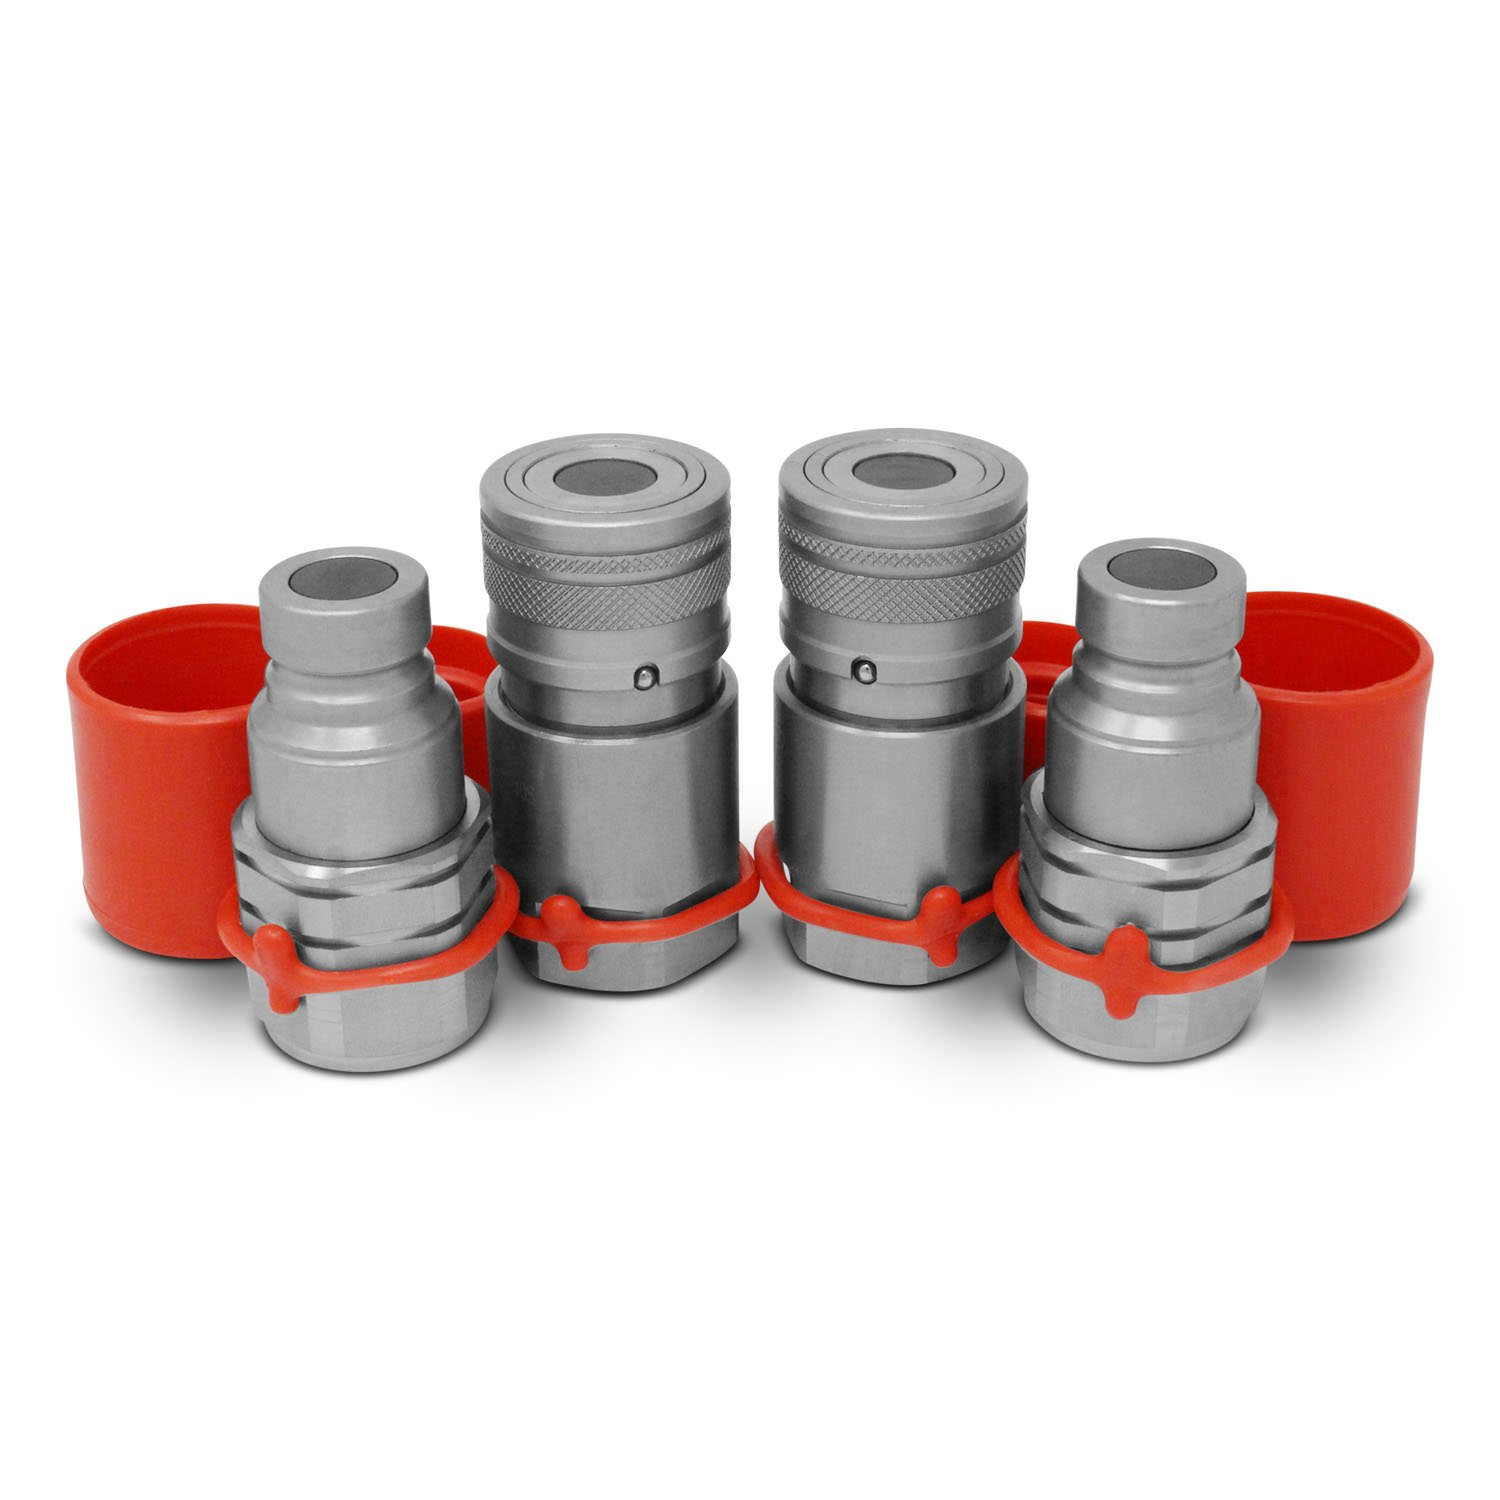 1/2'' Skid Steer Bobcat Flat Face Hydraulic Quick Connect Couplers / Couplings Set w/ Dust Caps, 2 Sets